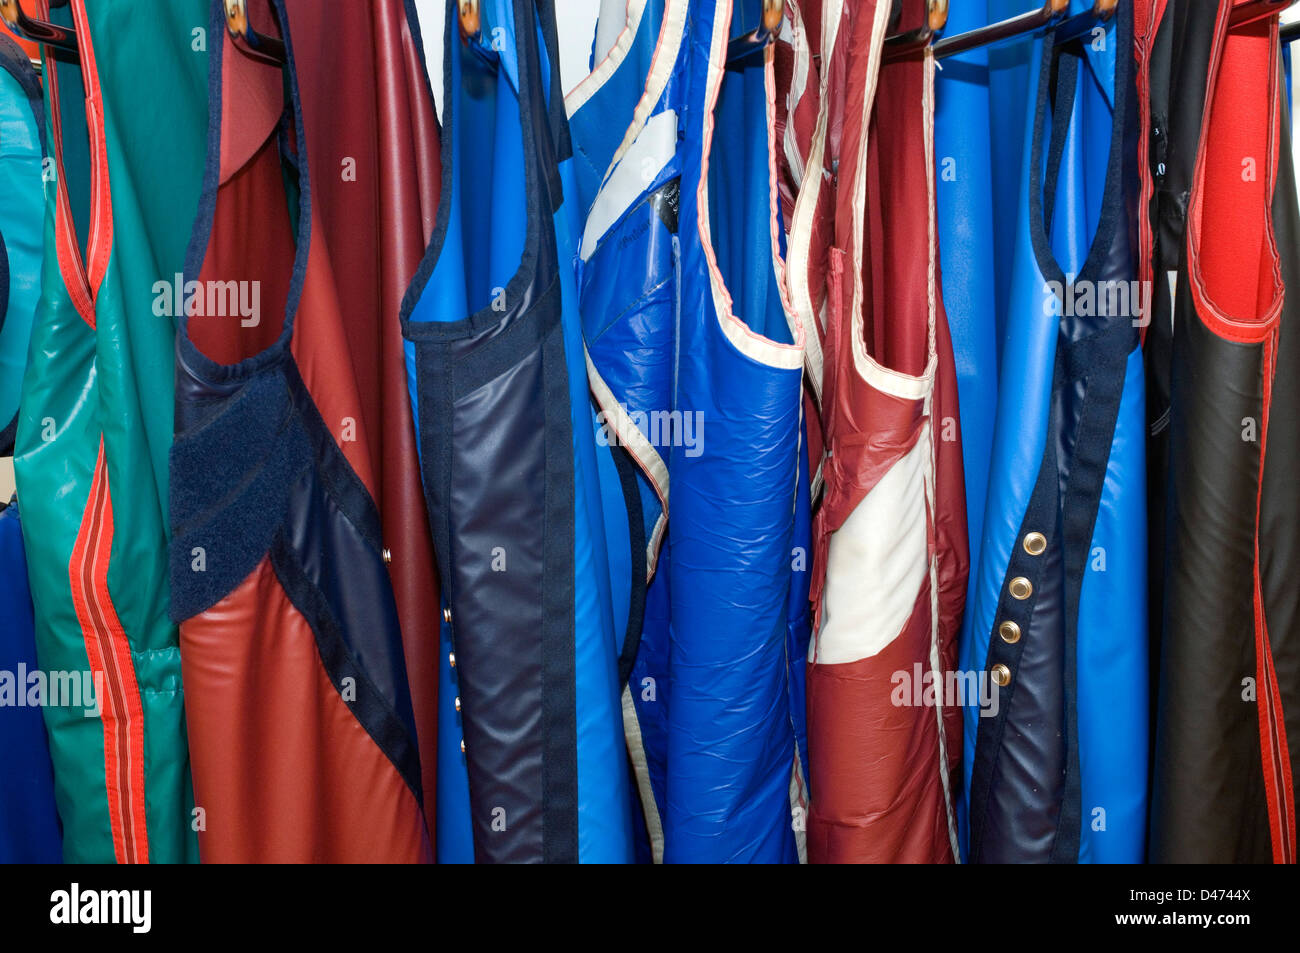 A selection of multi-coloured lead-lined jackets. - Stock Image